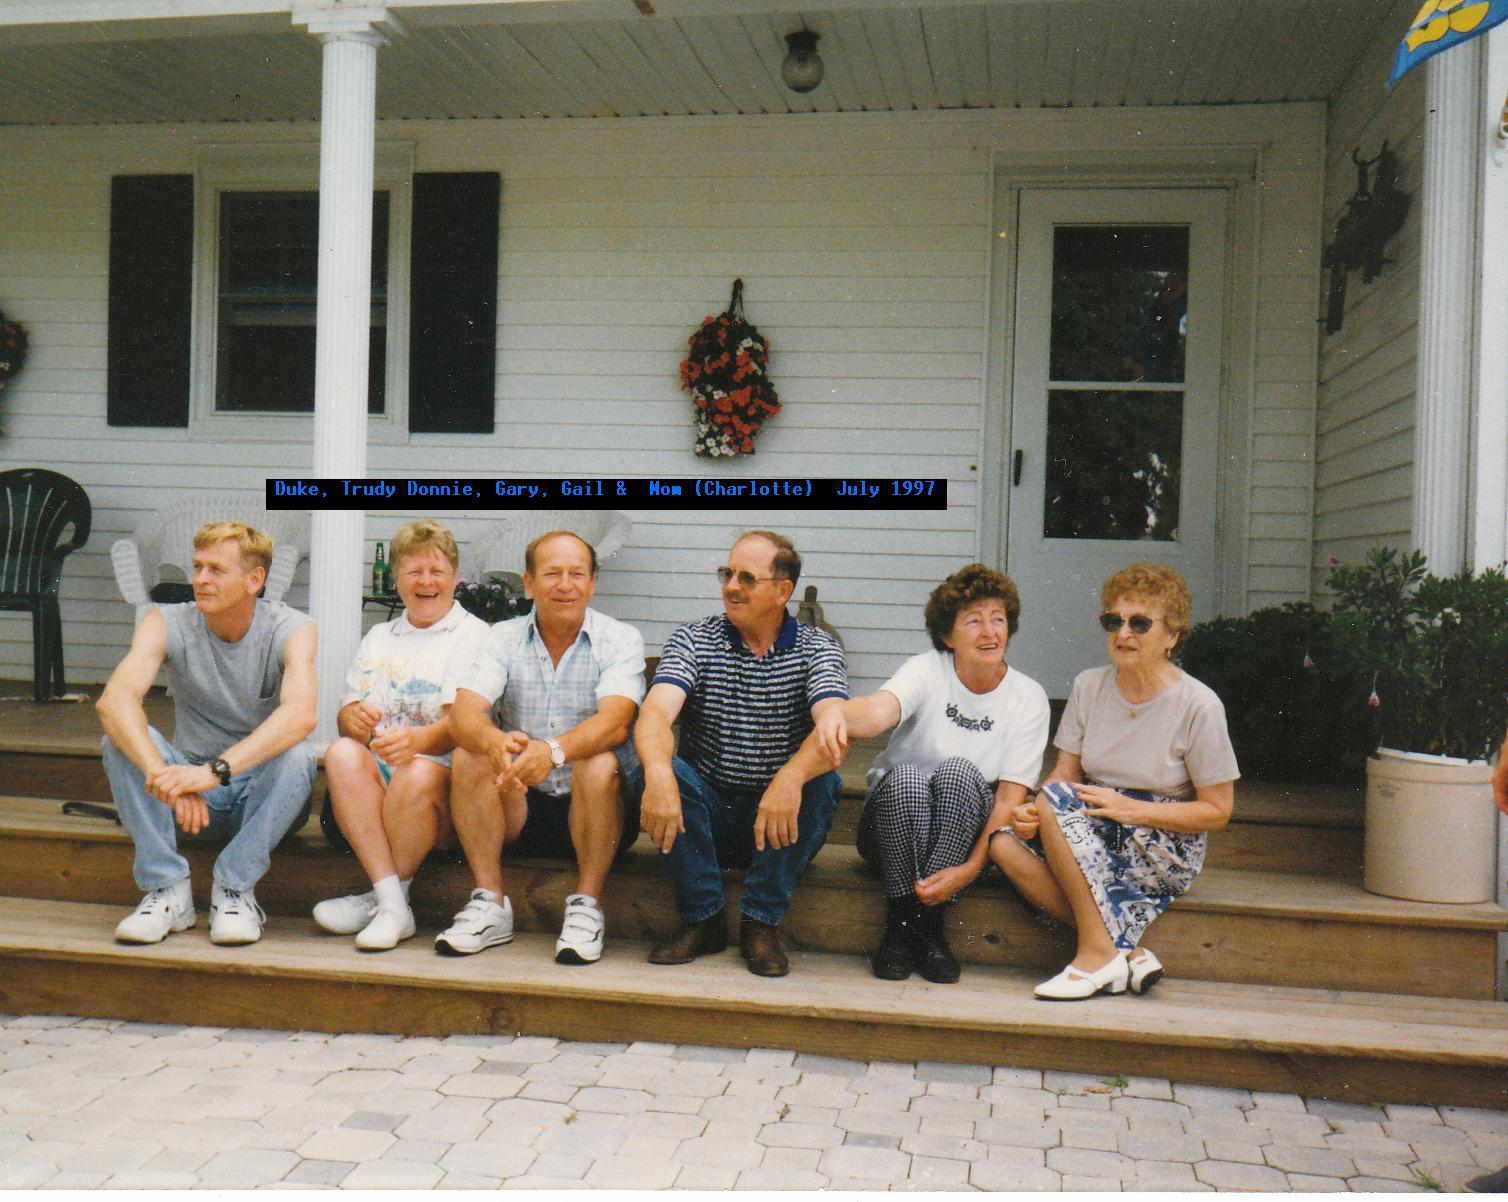 Donnie with his Mother, Sisters & Brothers